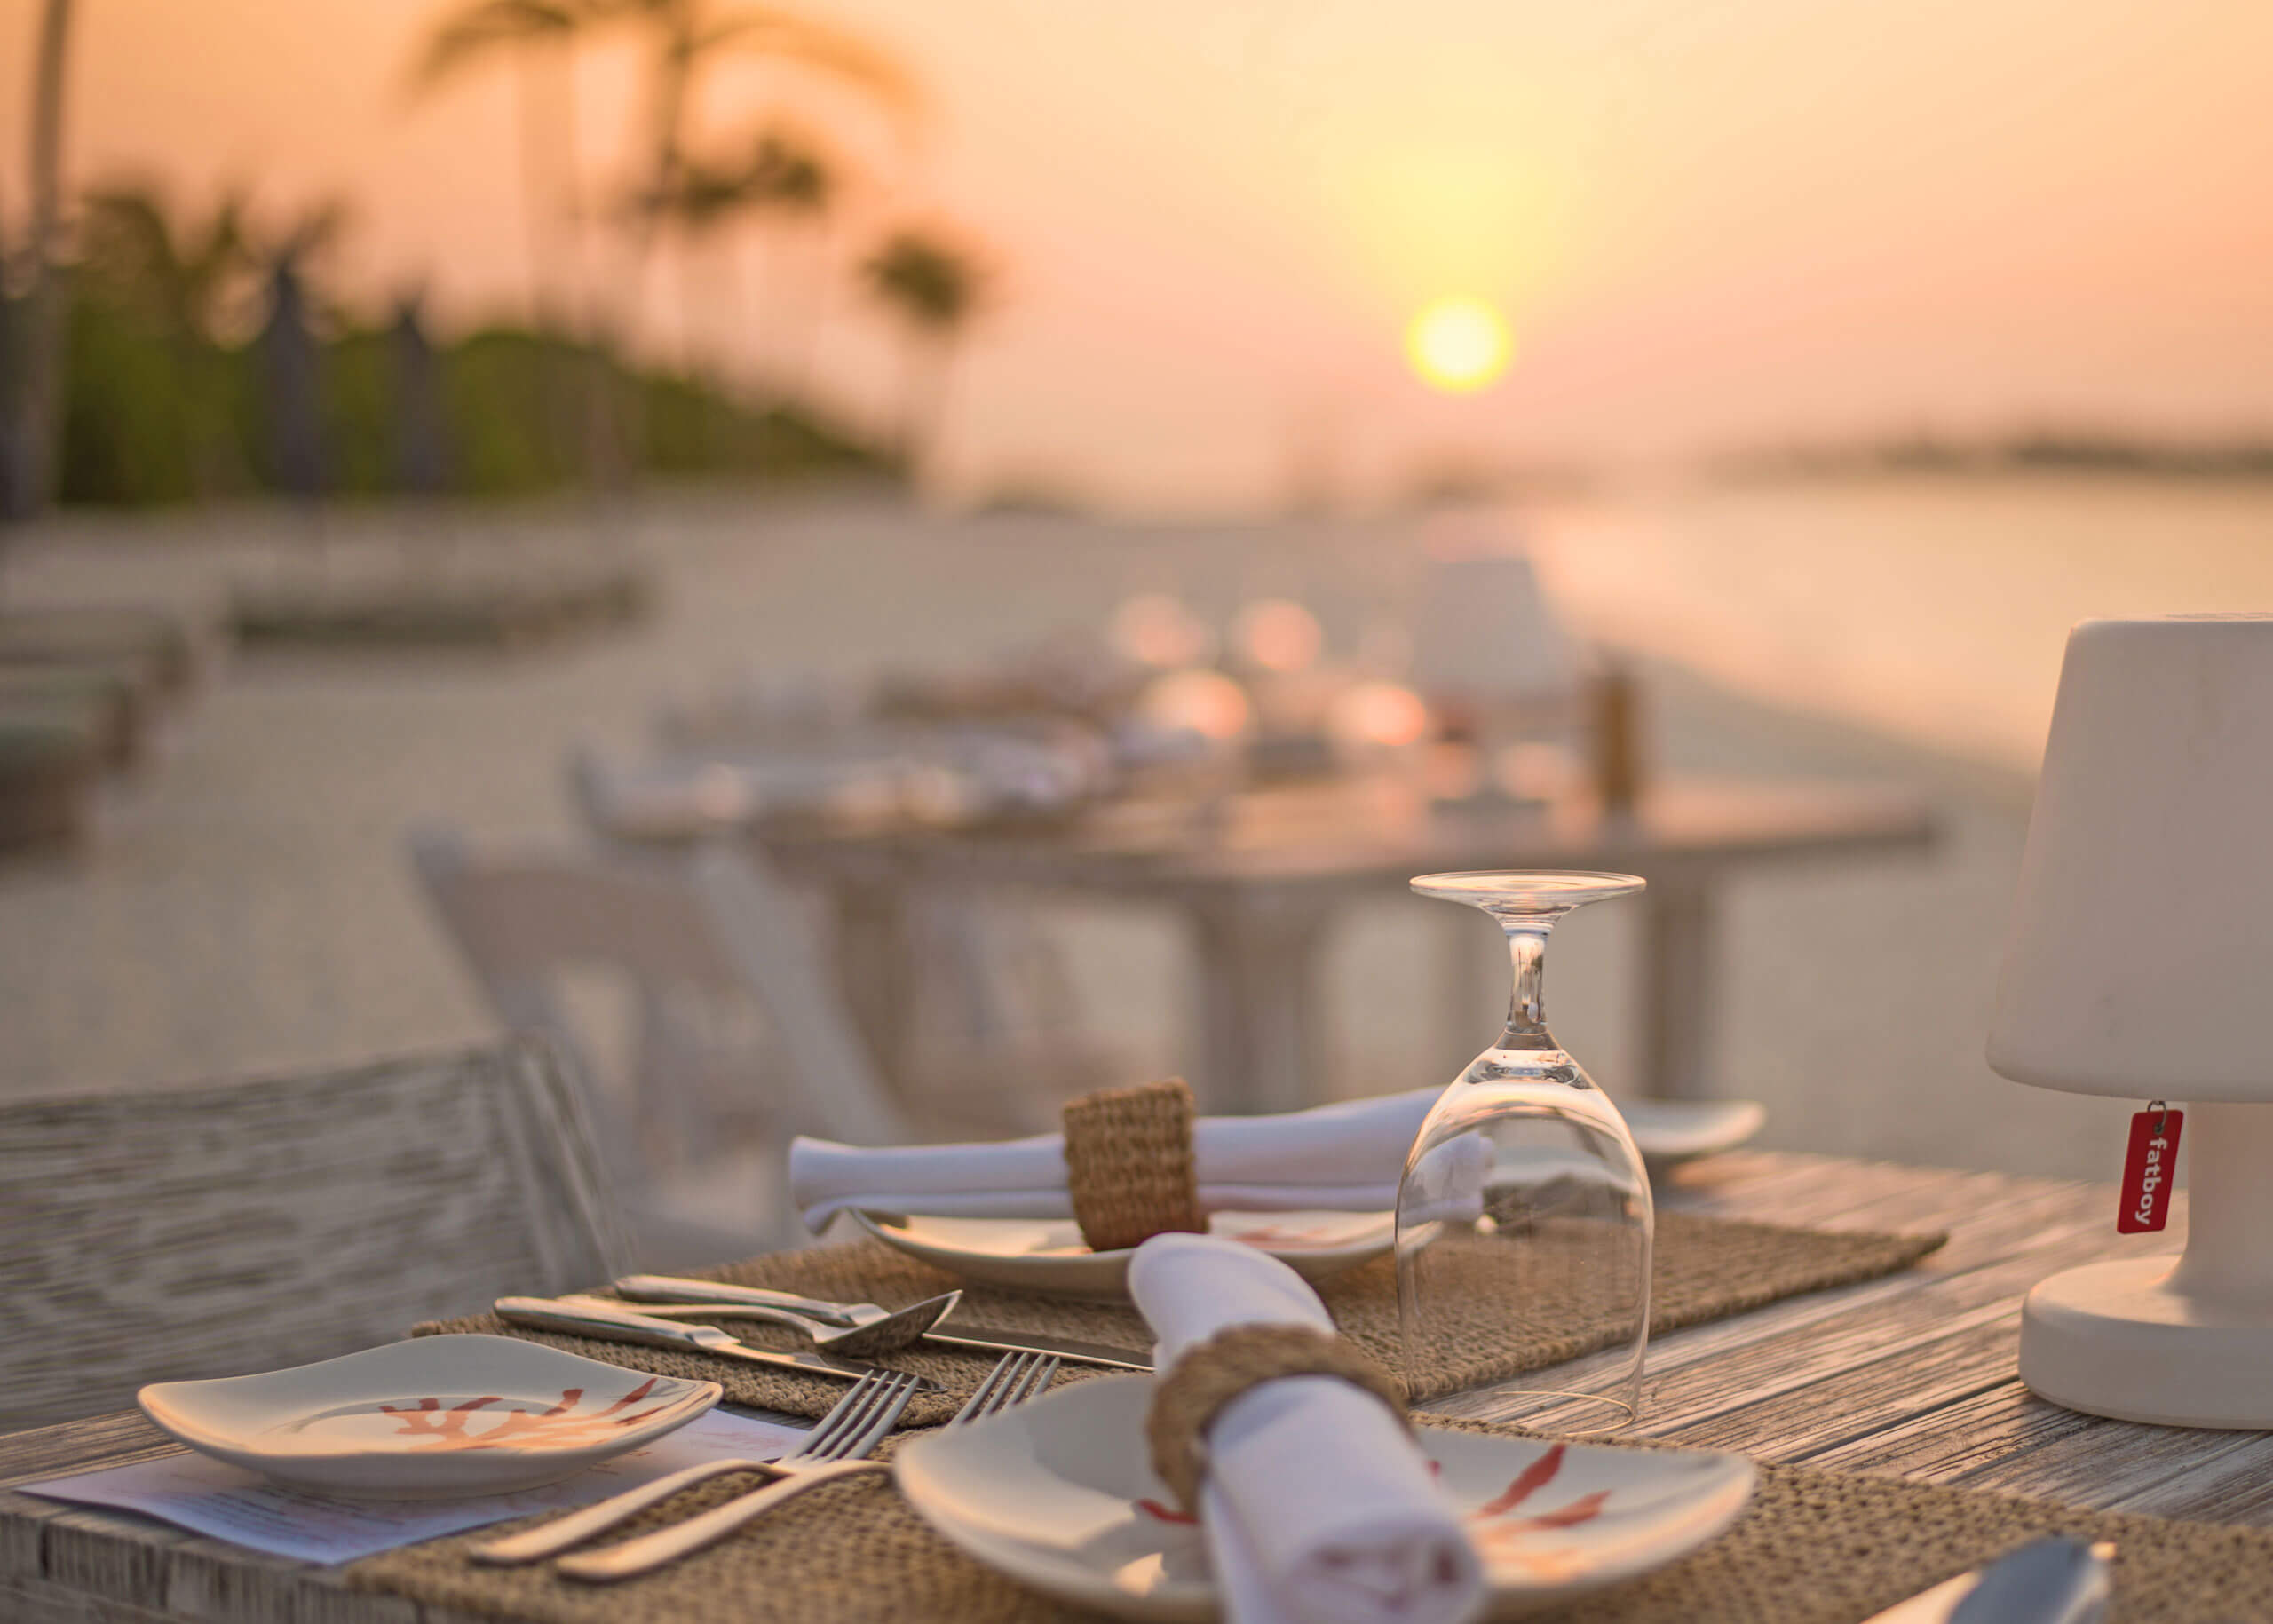 candle light dinner at beach